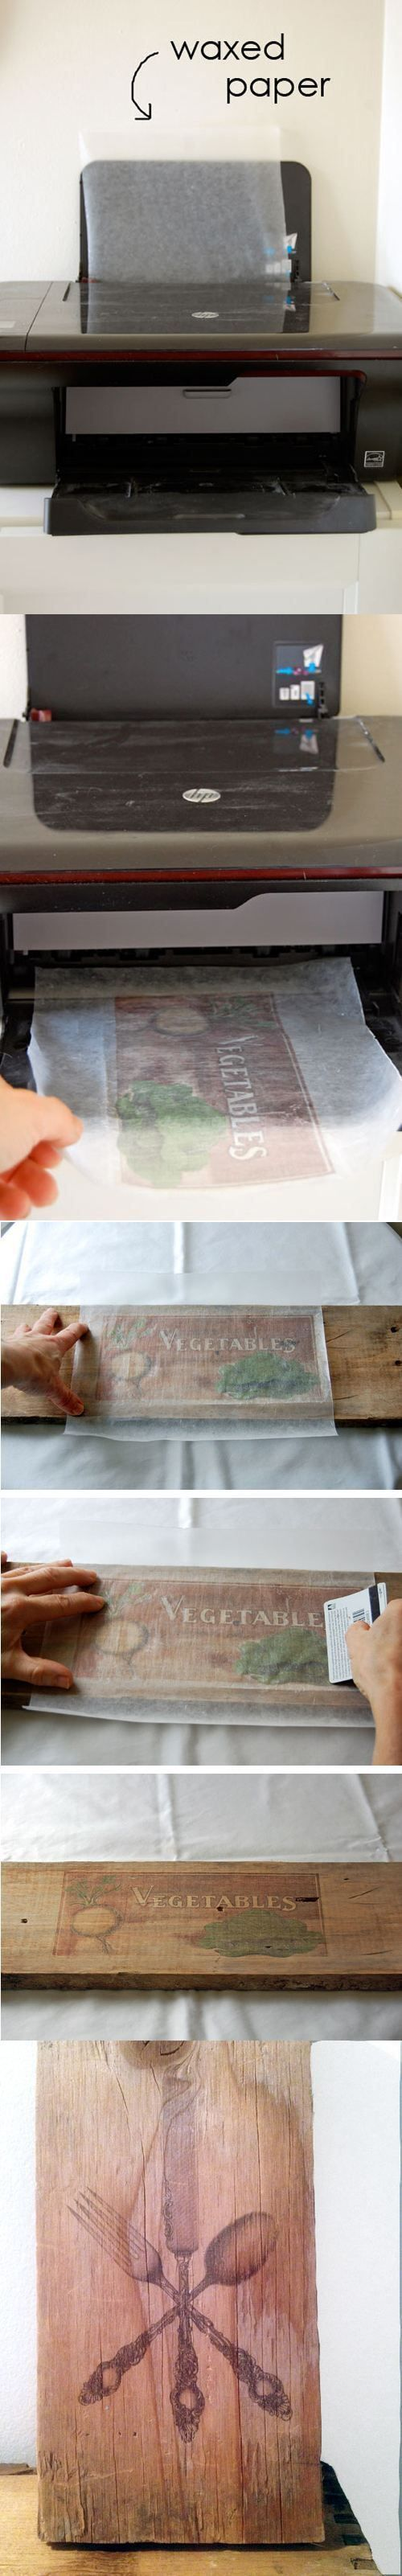 42 Craft Project Ideas That are Easy to Make and Sell | Big DIY IDeas cheap gift ideas, frugal gifts, cheap gifts